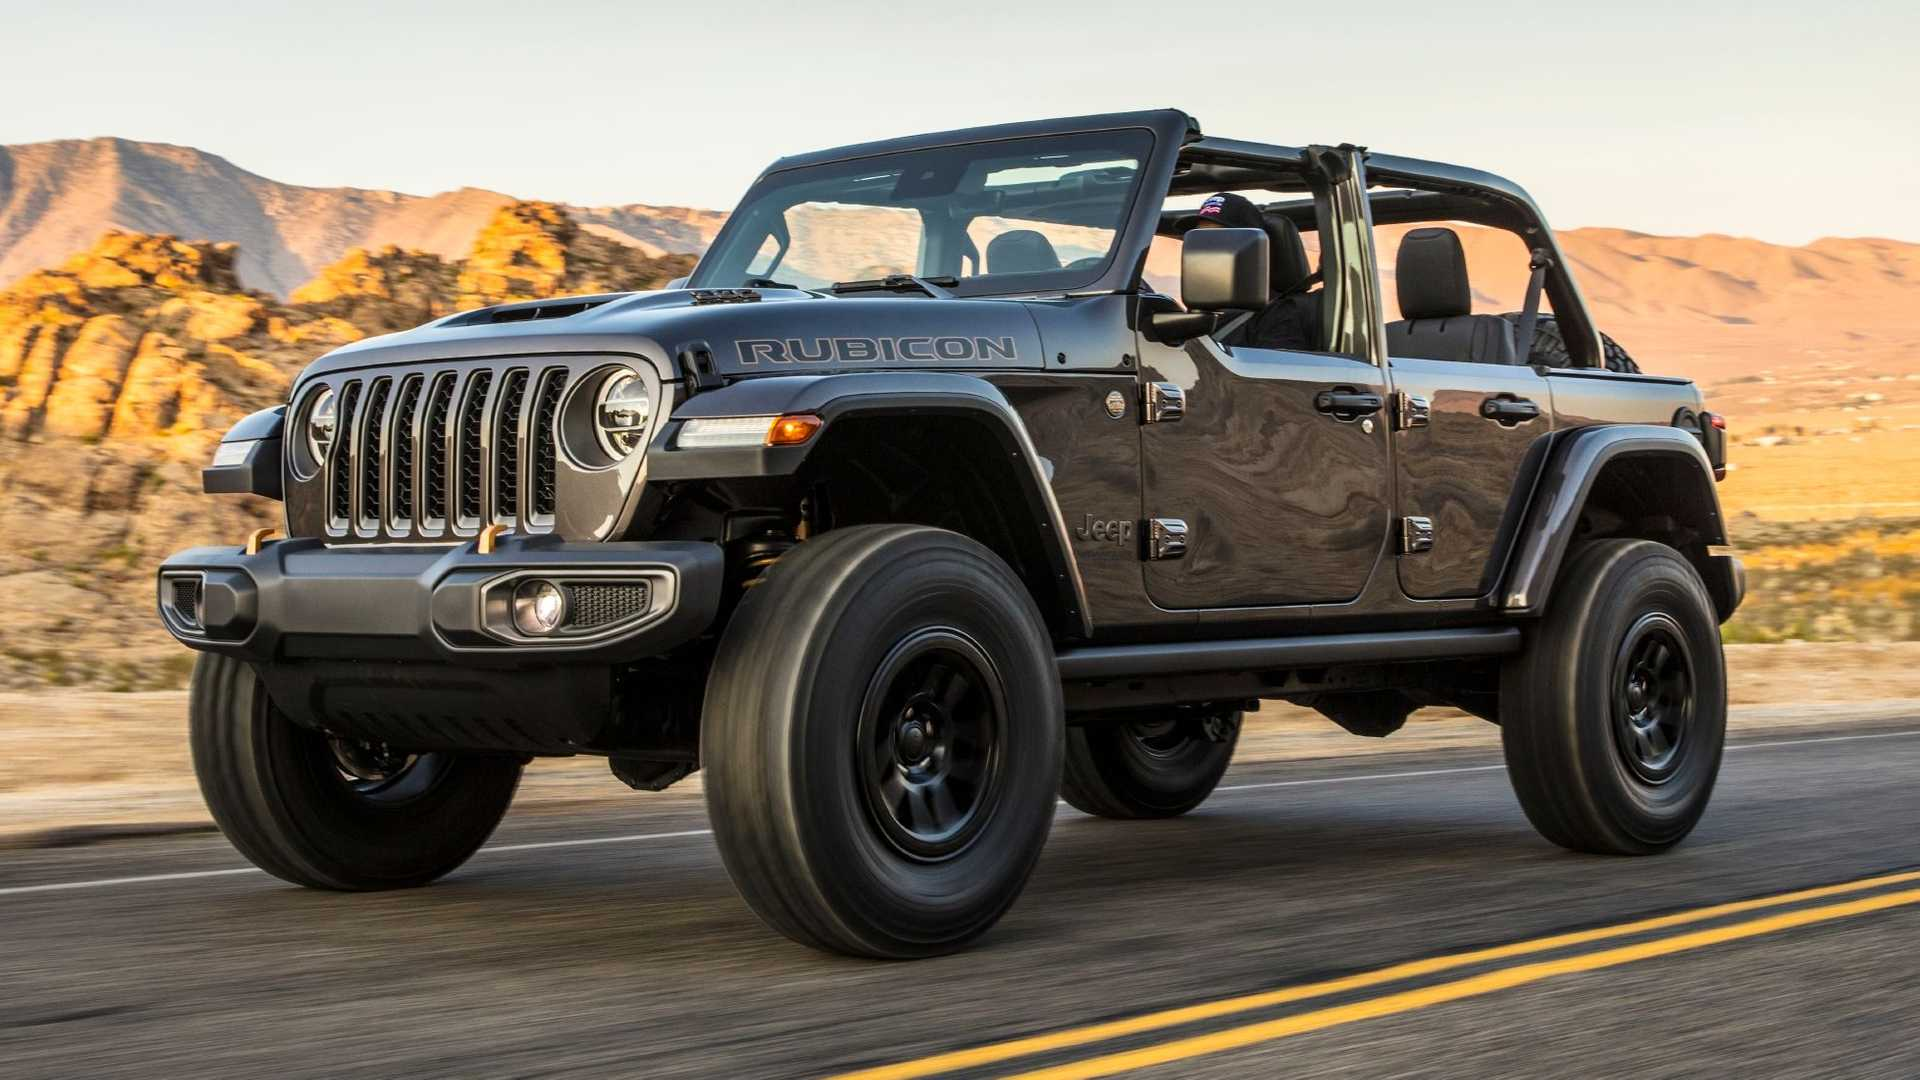 Jeep Wrangler Rubicon 392 on the road